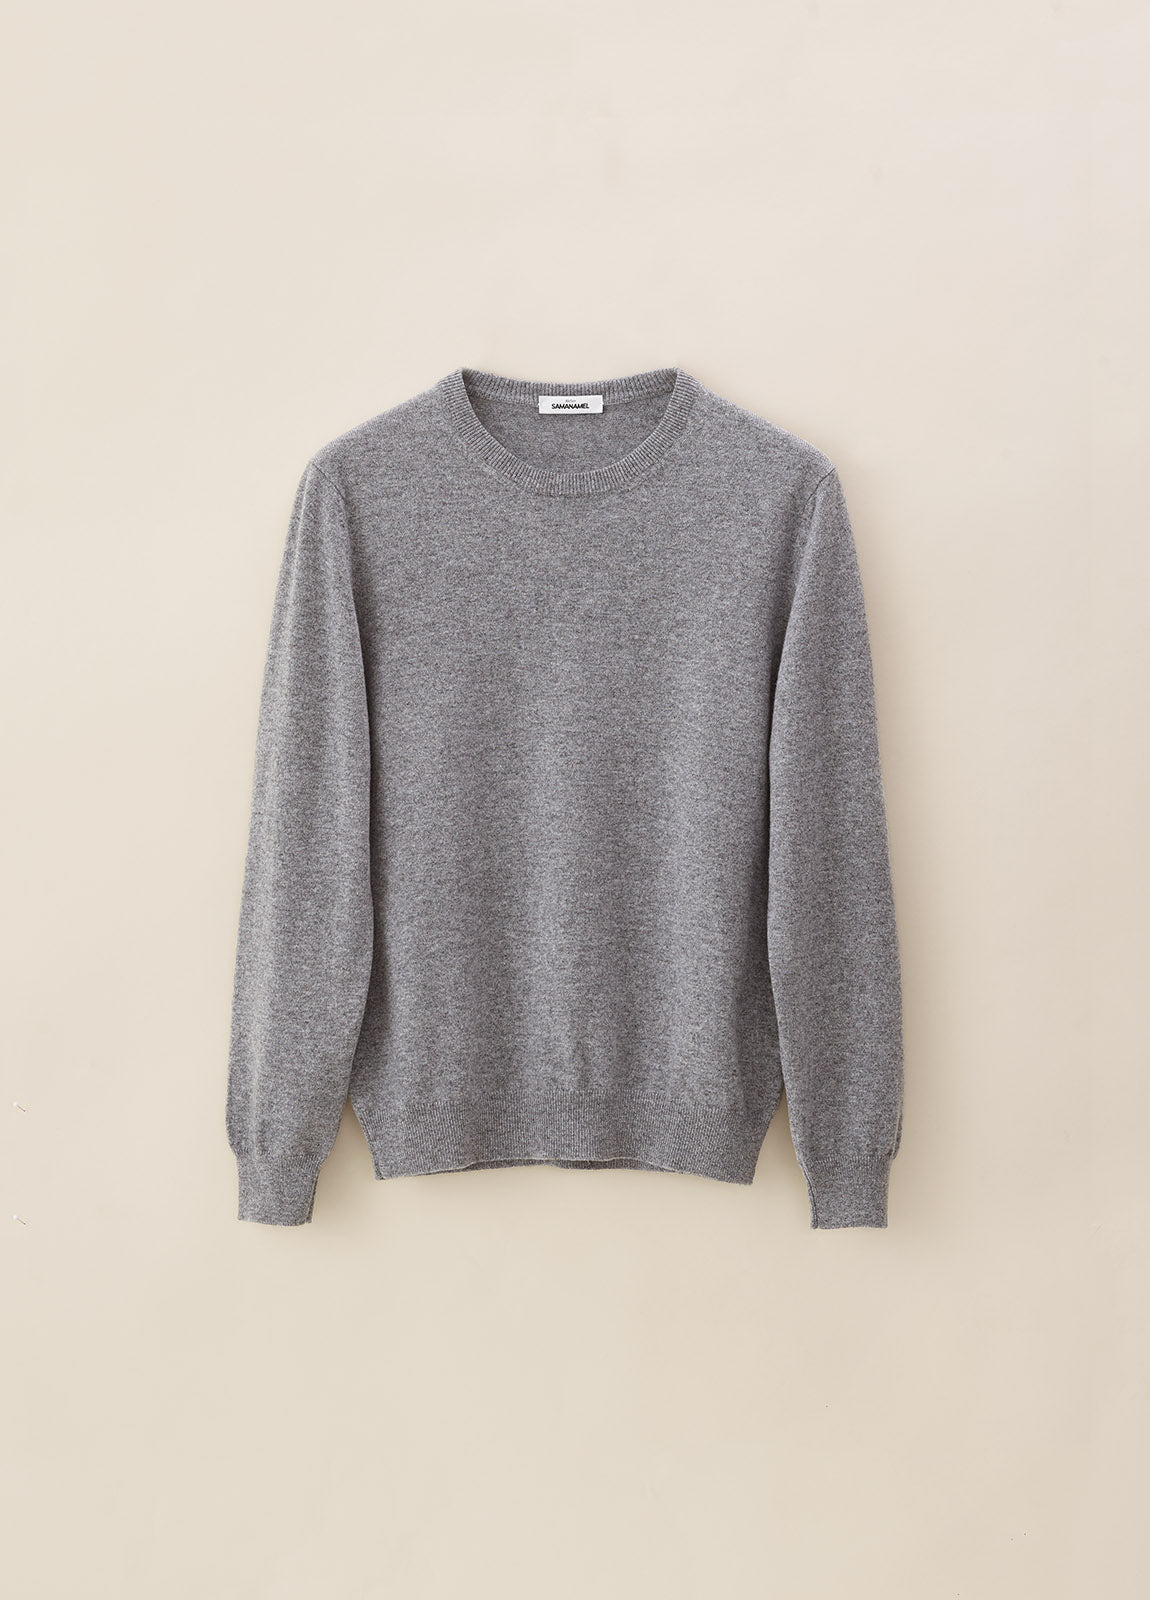 C Cashmere - Light Grey